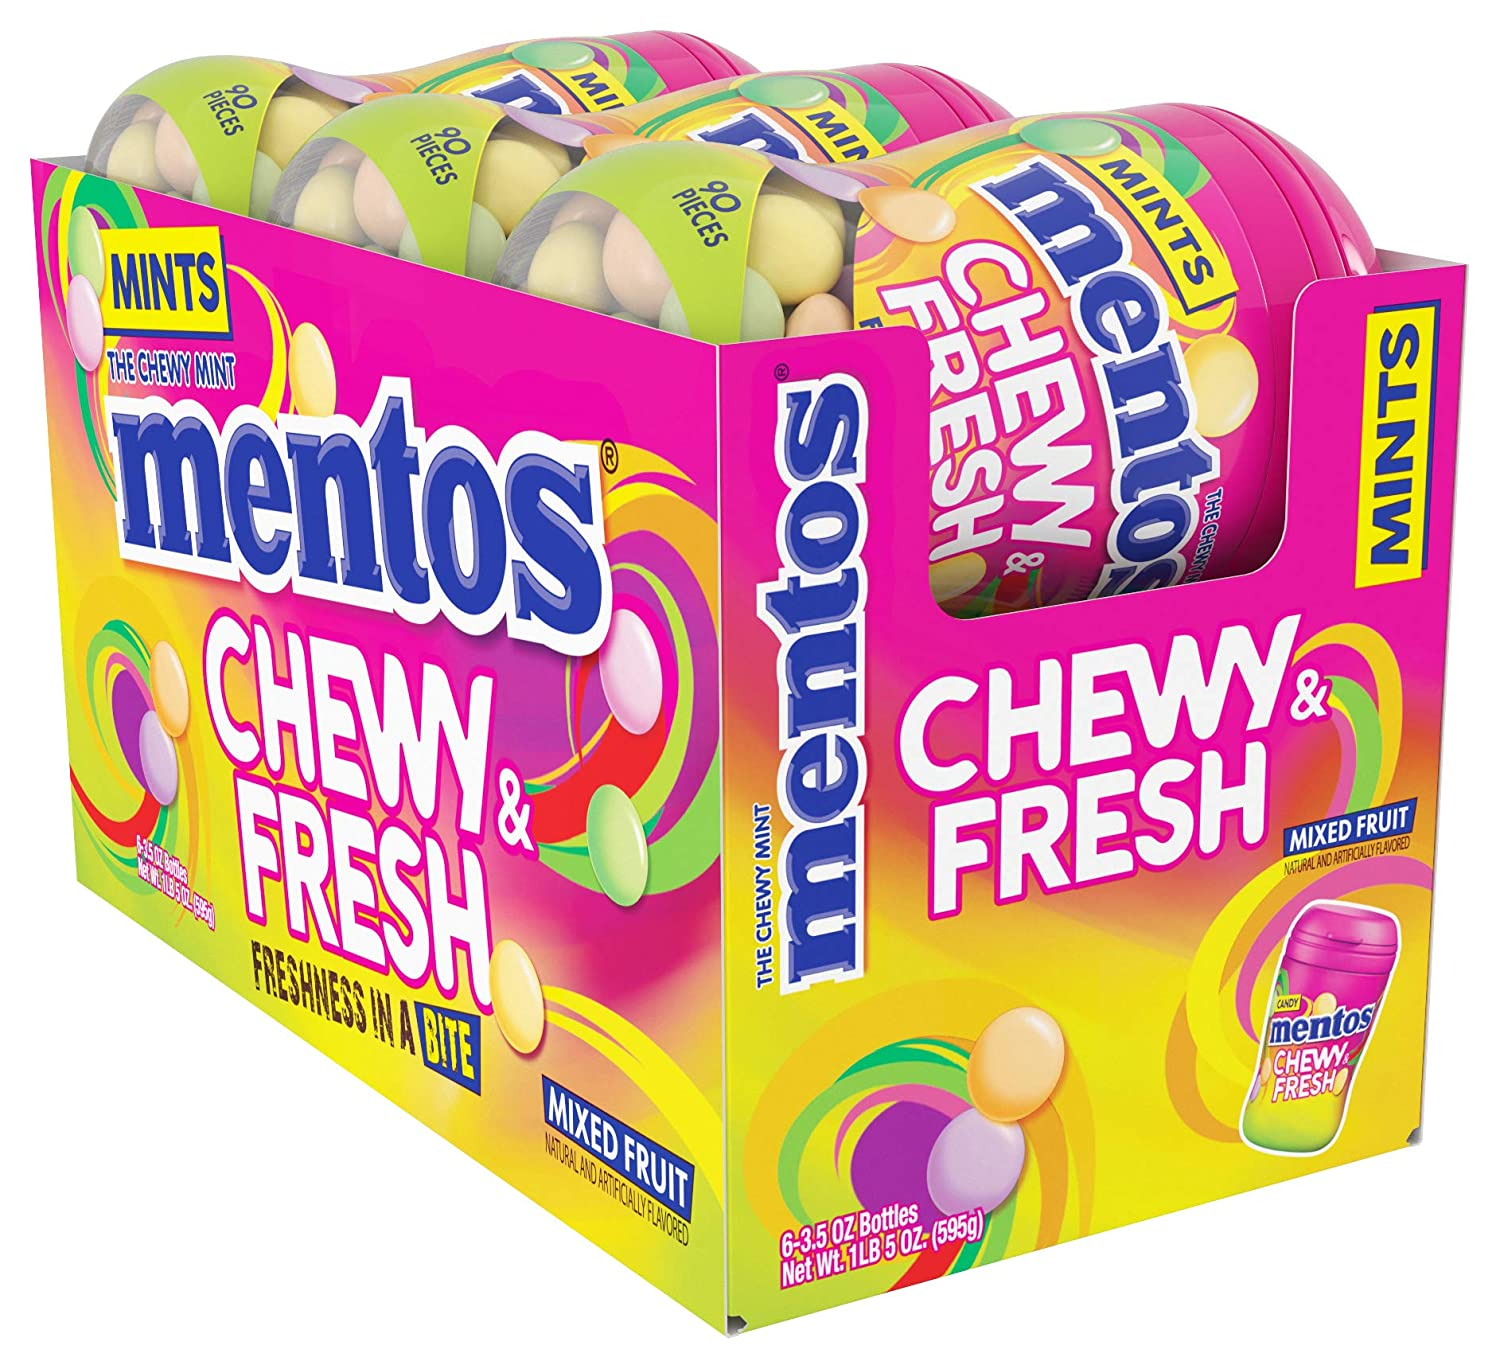 Mentos Tampa Mall Chewy Fresh Breath Mints Max 84% OFF Mixed Candy Fruit 6ct